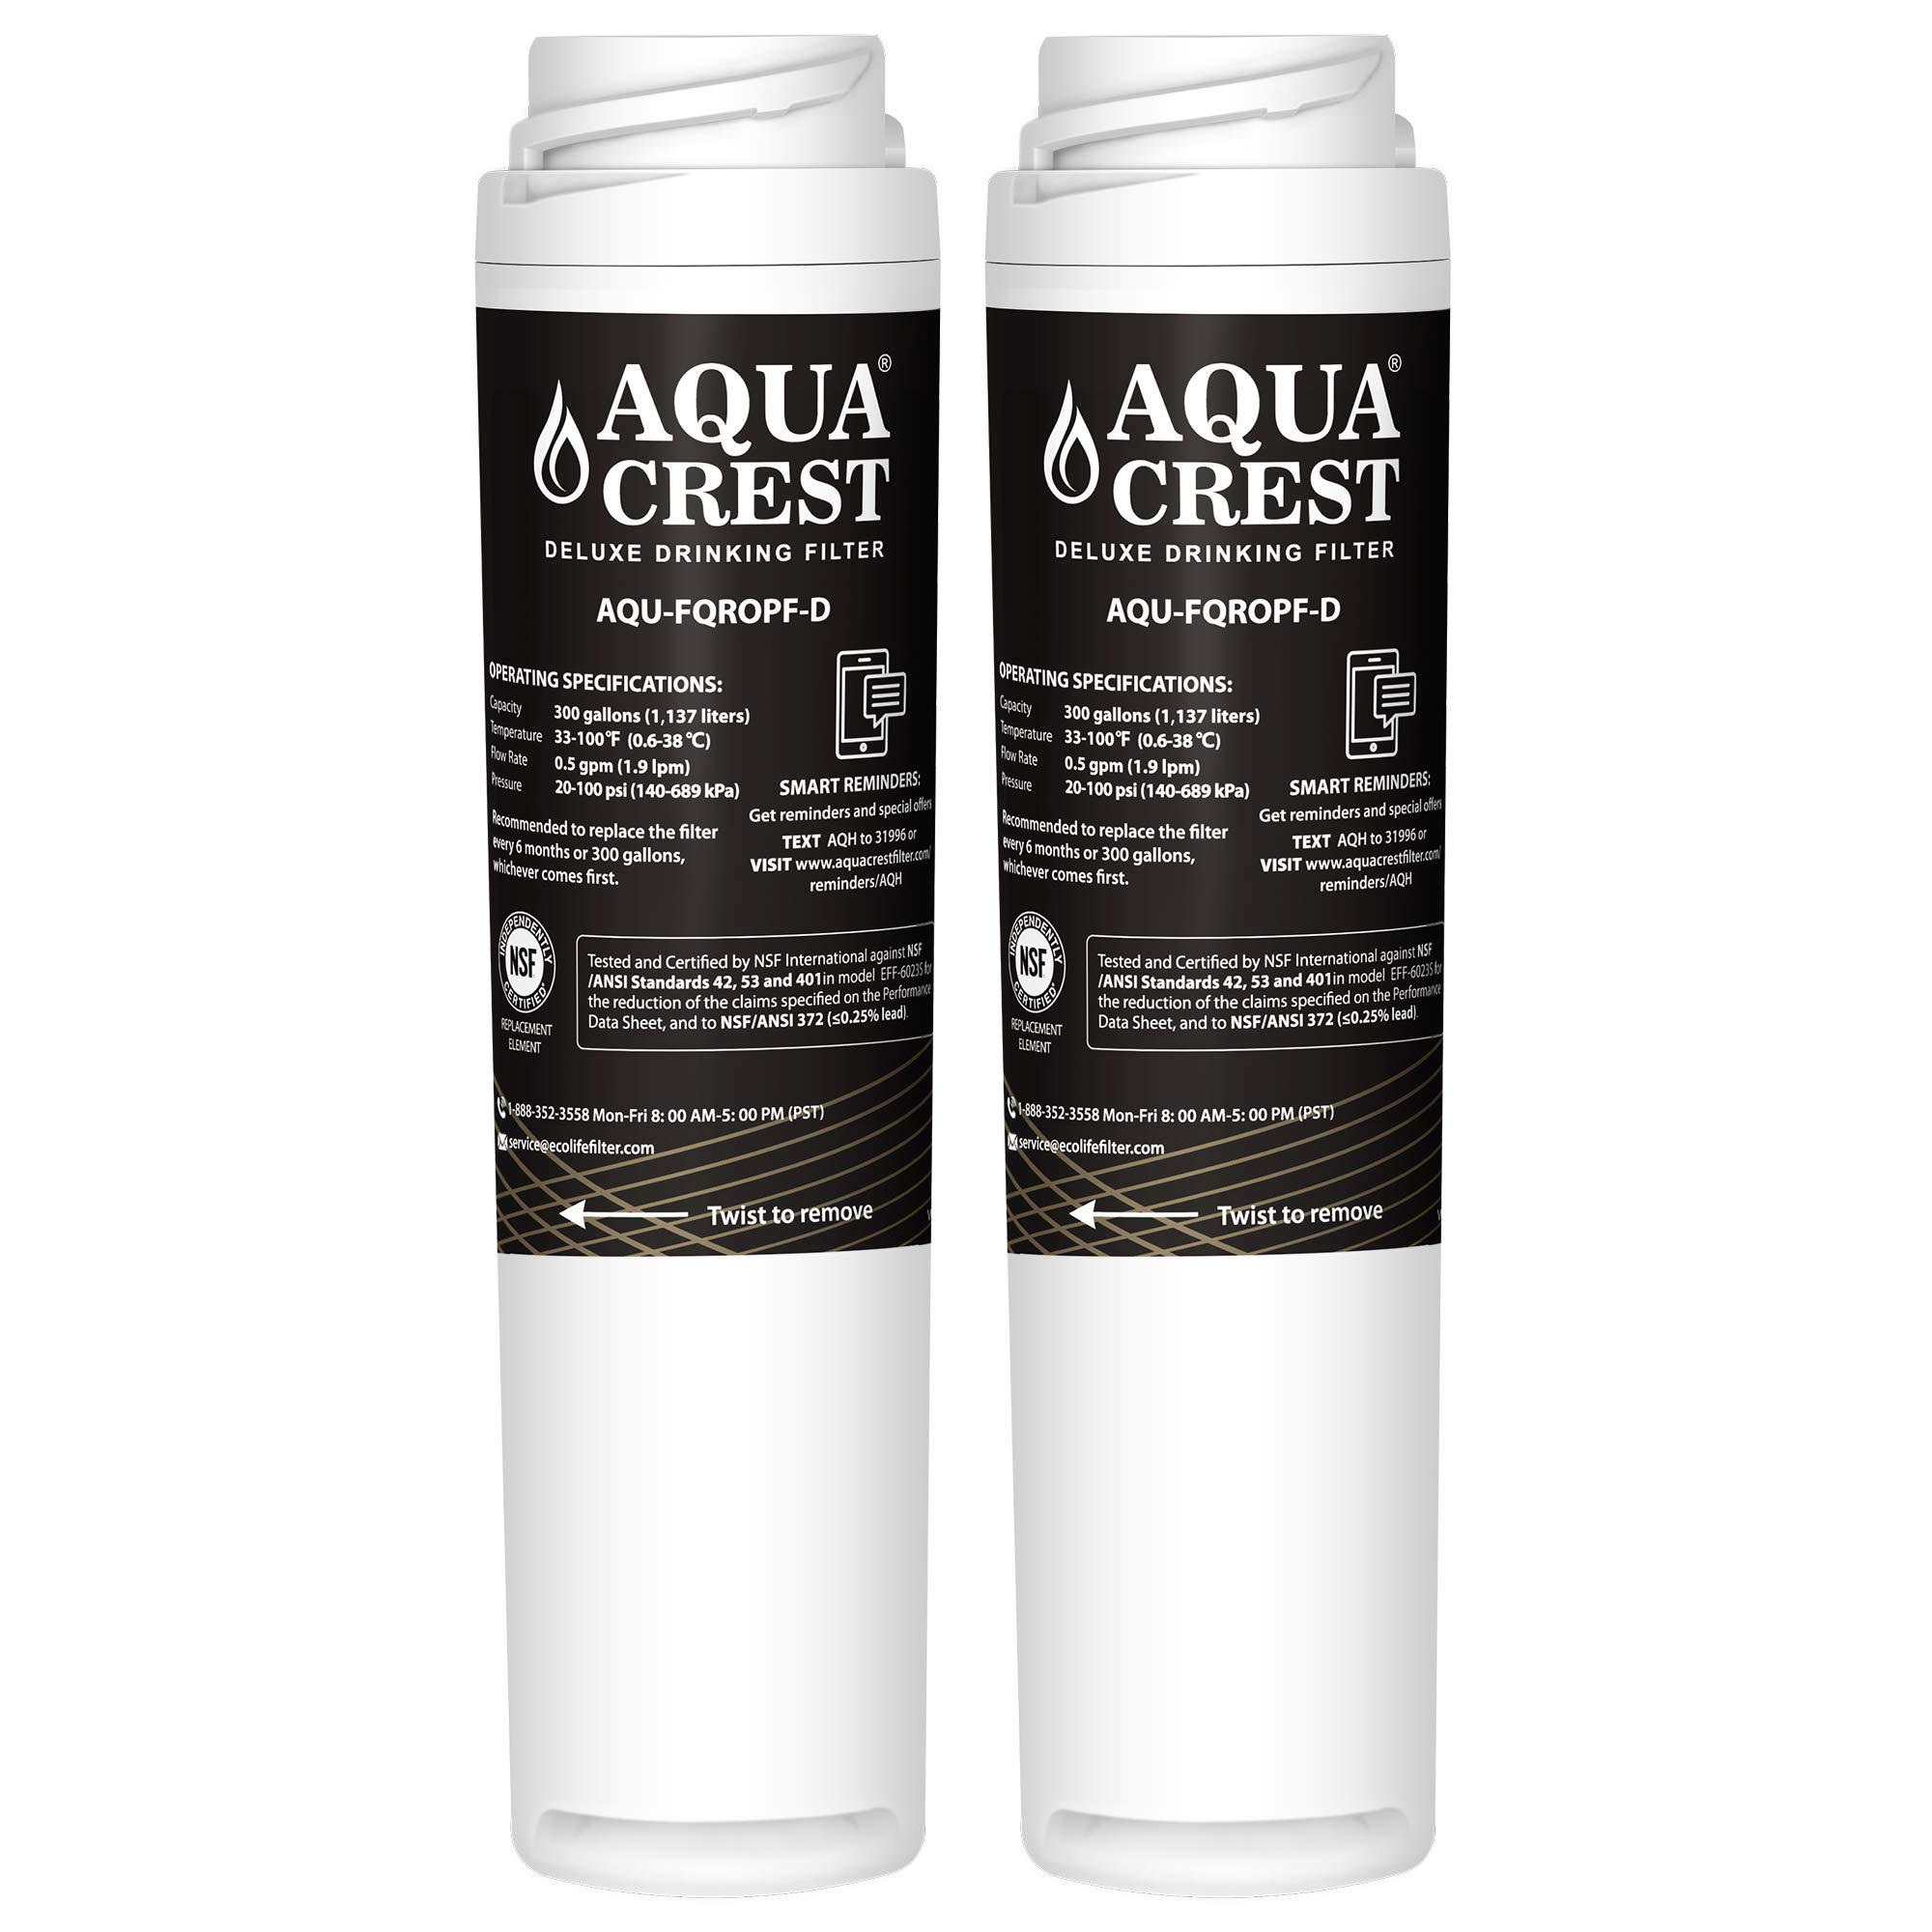 AQUACREST FQROPF NSF 401,53&42 Replacement Under Sink Water Filter, Compatible with GE FQROPF Reverse Osmosis Water Filter (1 Set)